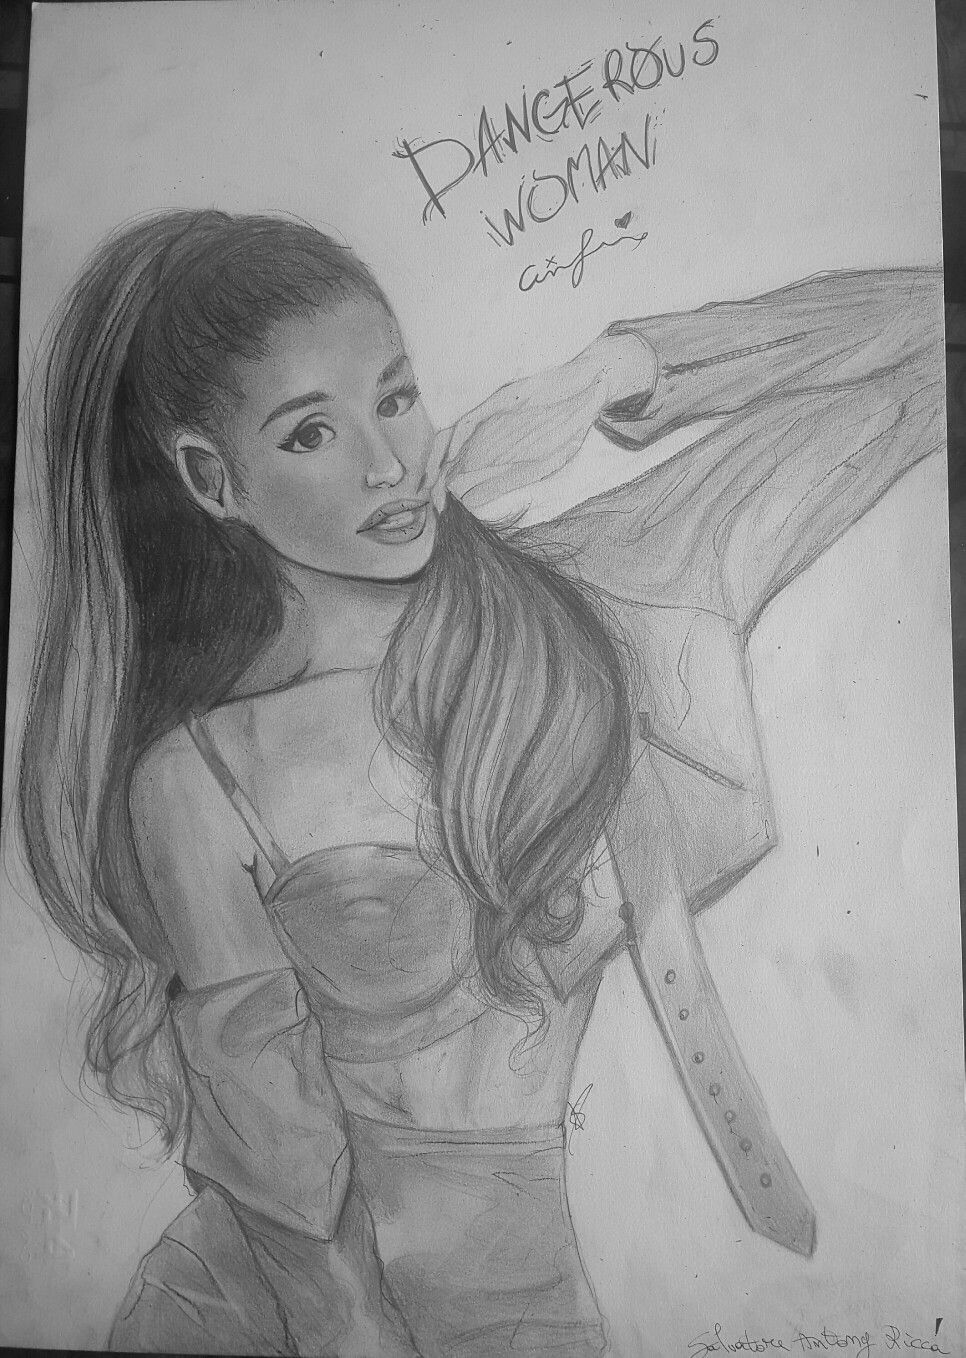 Portrait of ariana grande dangerous woman i used a fabriano paper 33x48 cm and the following pencils hb 2b 4b 4h i hope you enjoy my drawing as i